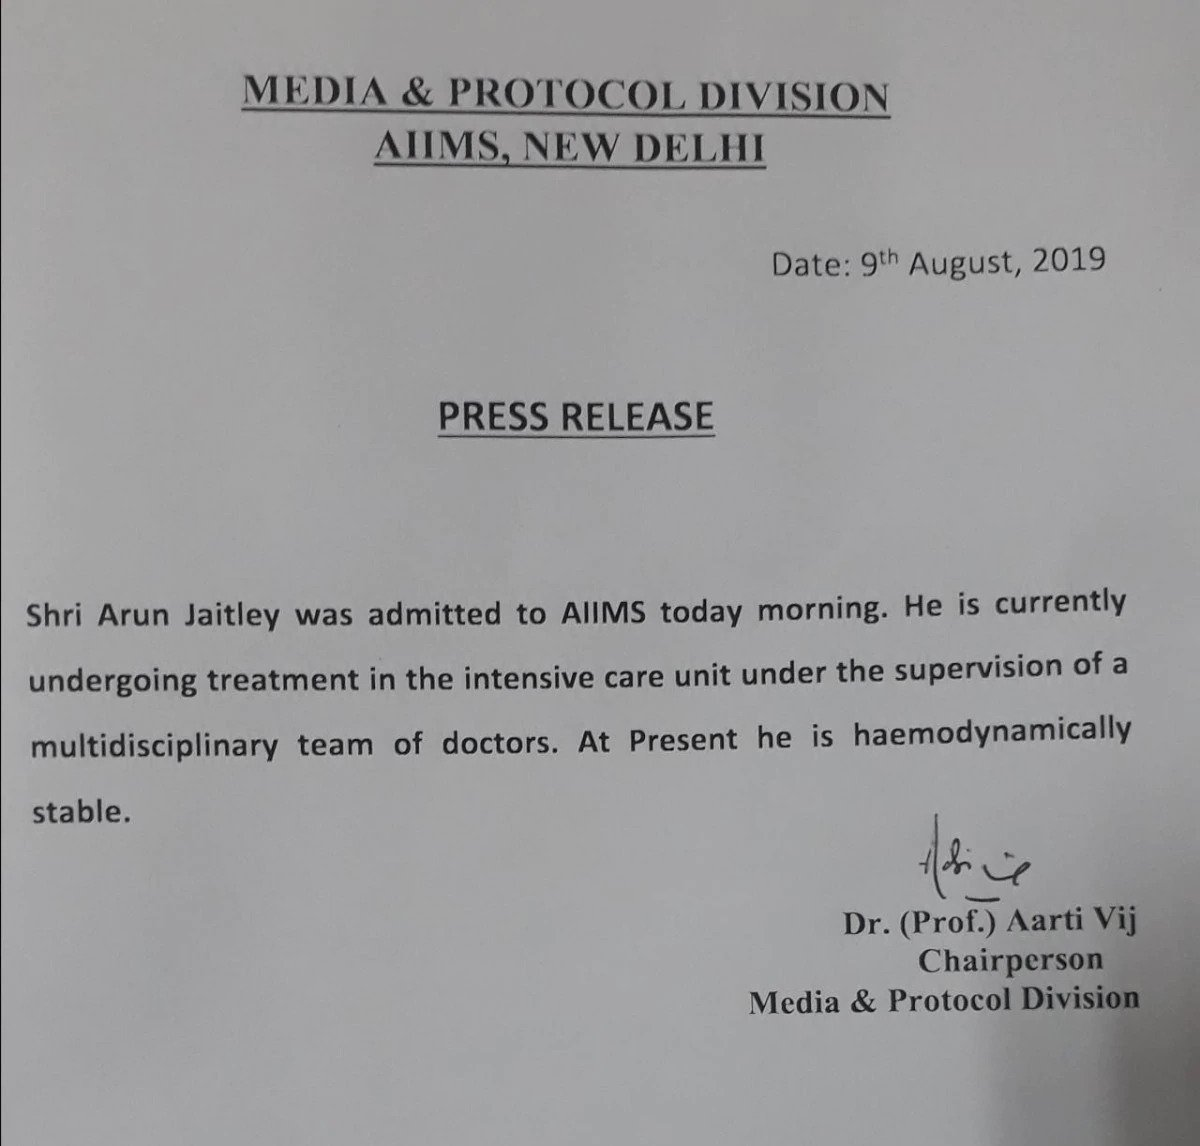 Jaitley admitted to AIIMS, 'haemodynamically' stable